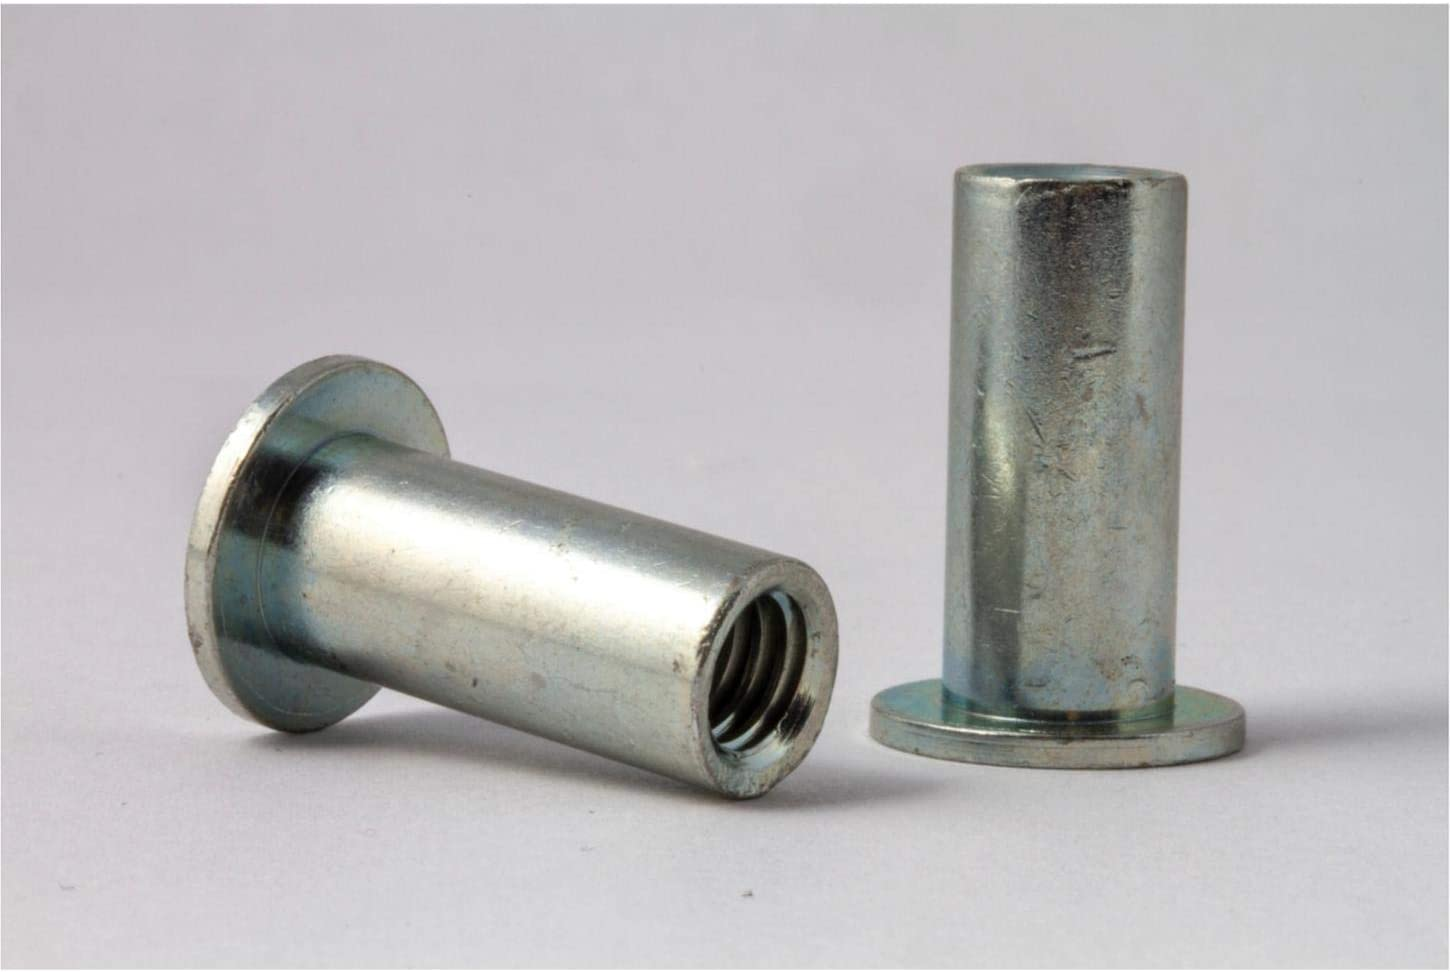 AESS37-455 Award RIVETNUT 3 8-16 .370-.455 GR RND HD S Inventory cleanup selling sale Body Flat